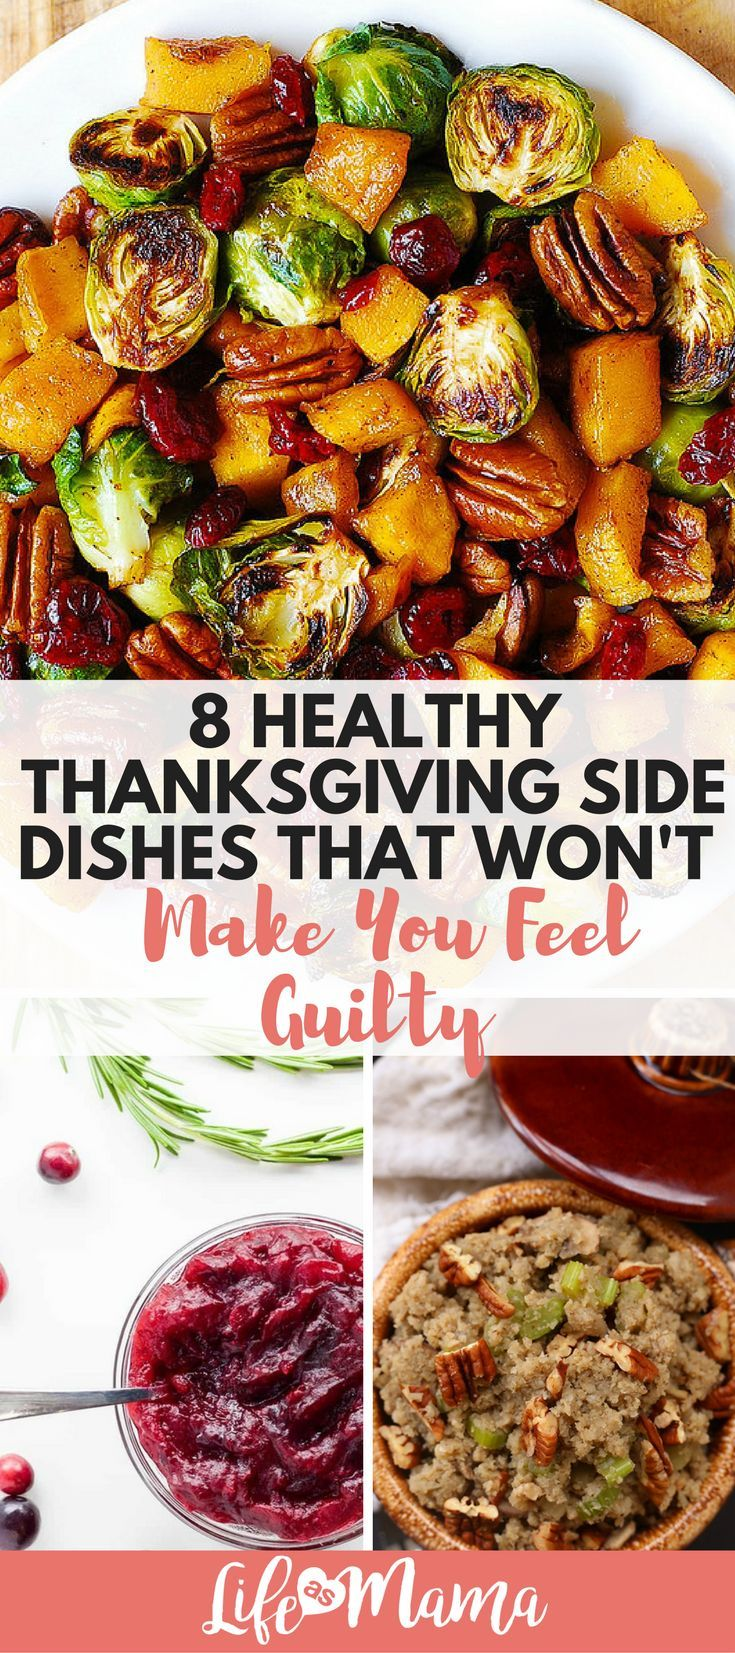 8 Healthy Thanksgiving Side Dishes That Won't Make You Feel Guilty